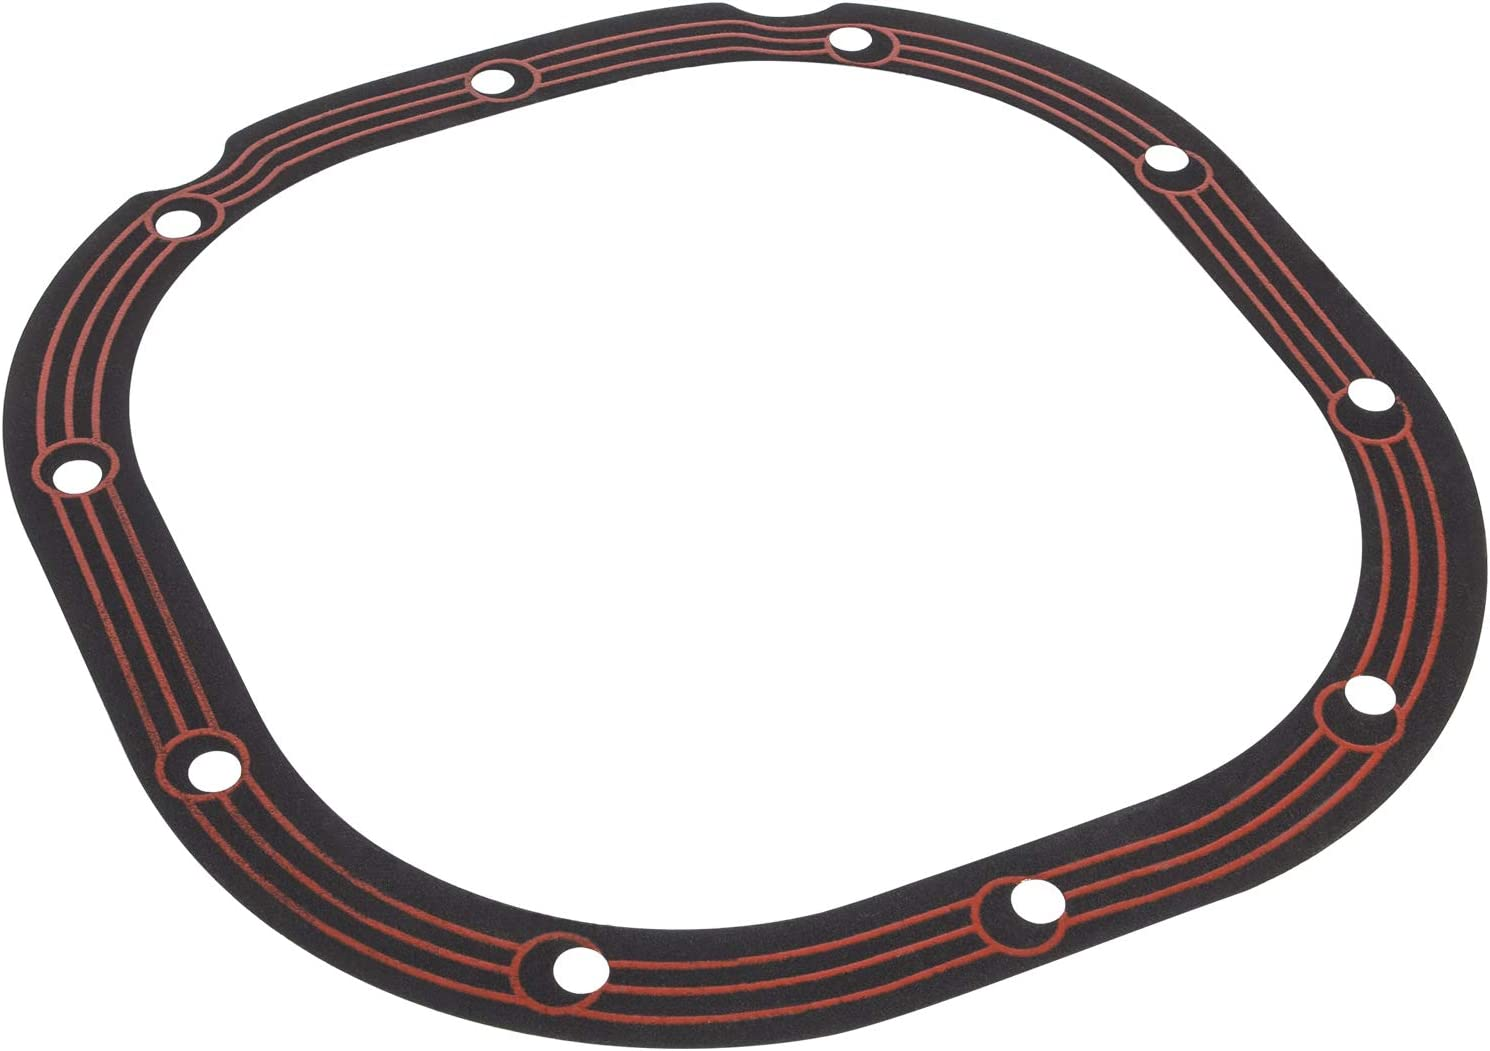 Sunluway F880 Differential Cover Gasket for Ford 8.8 IN